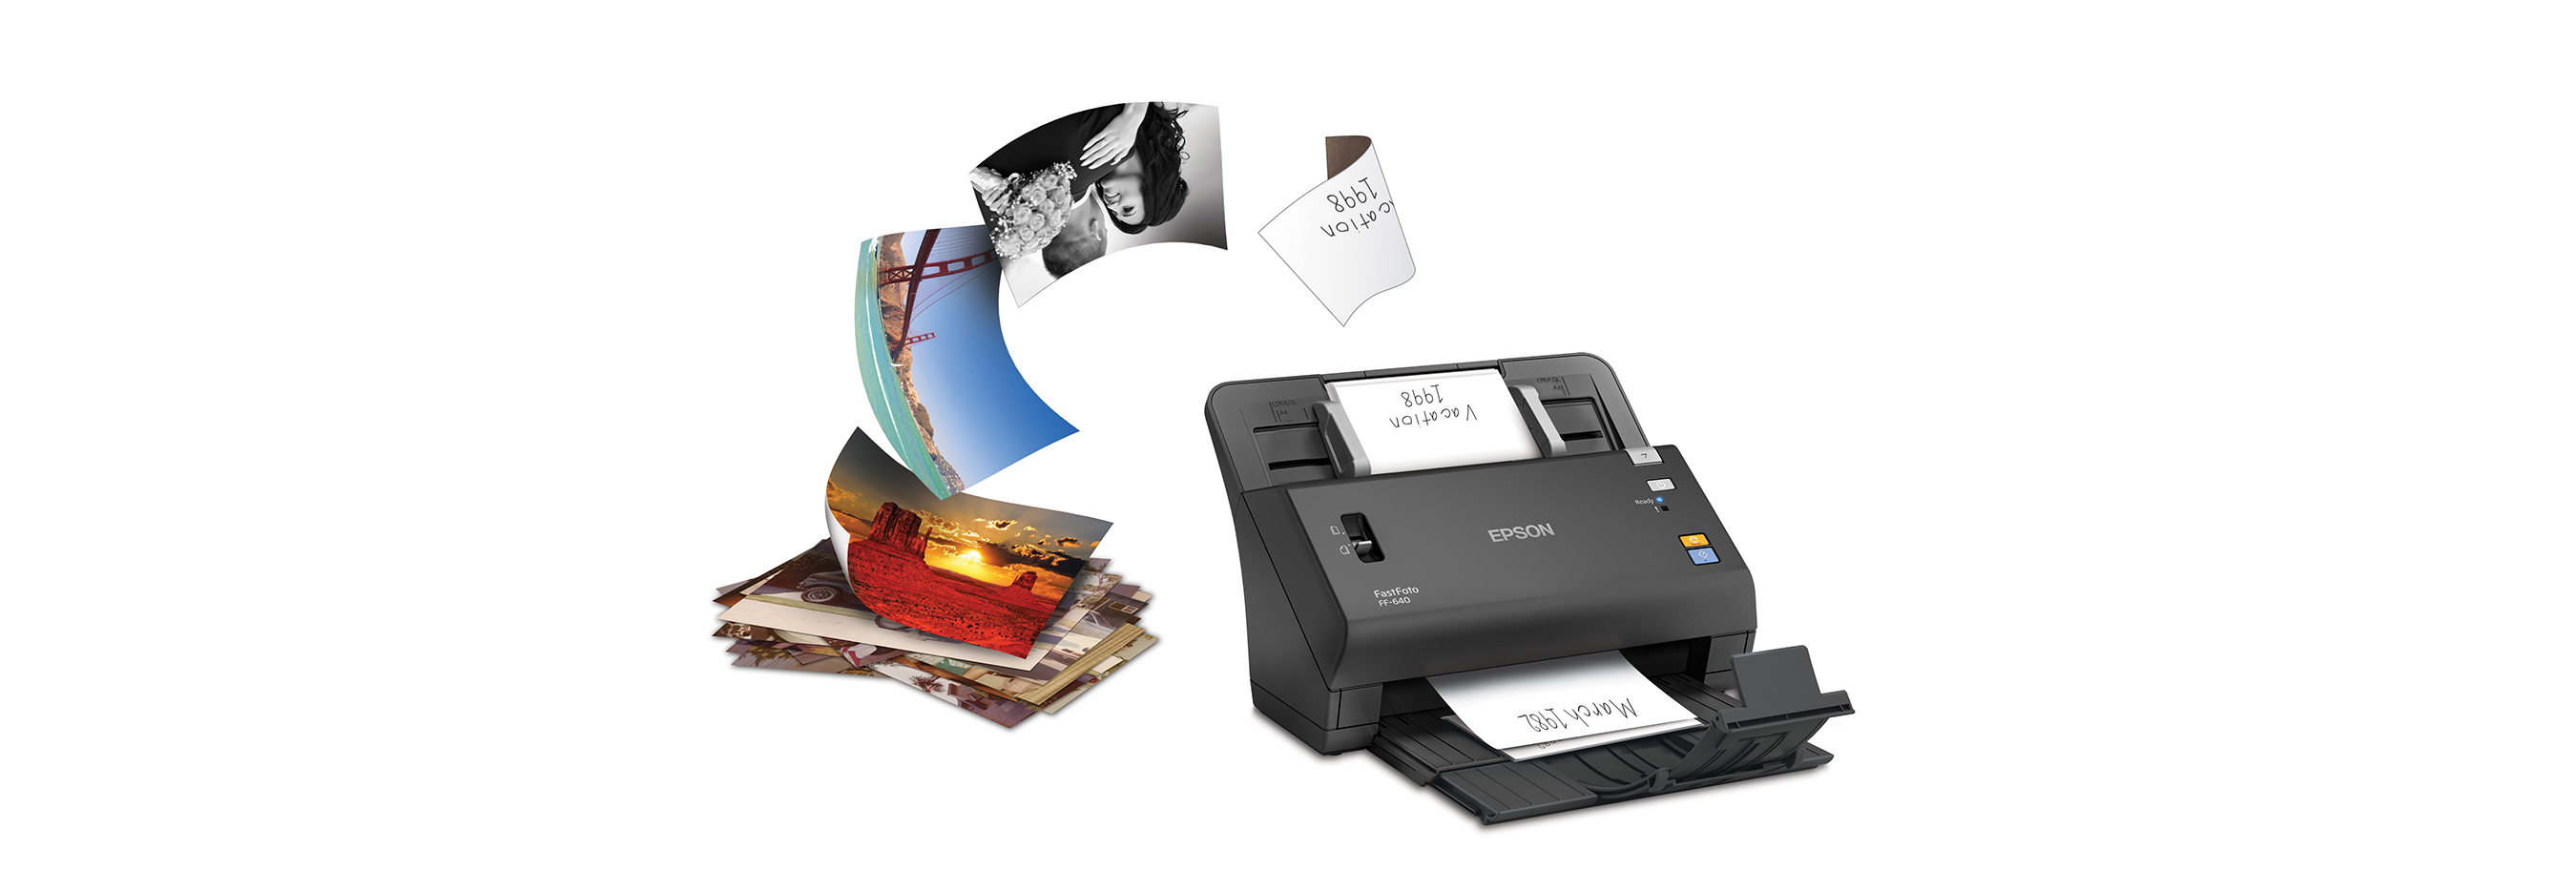 multiple fastest s hr documents to fastfoto with epson scans scanners worlds world photos debuts restore photo feeder english for players scanner scan